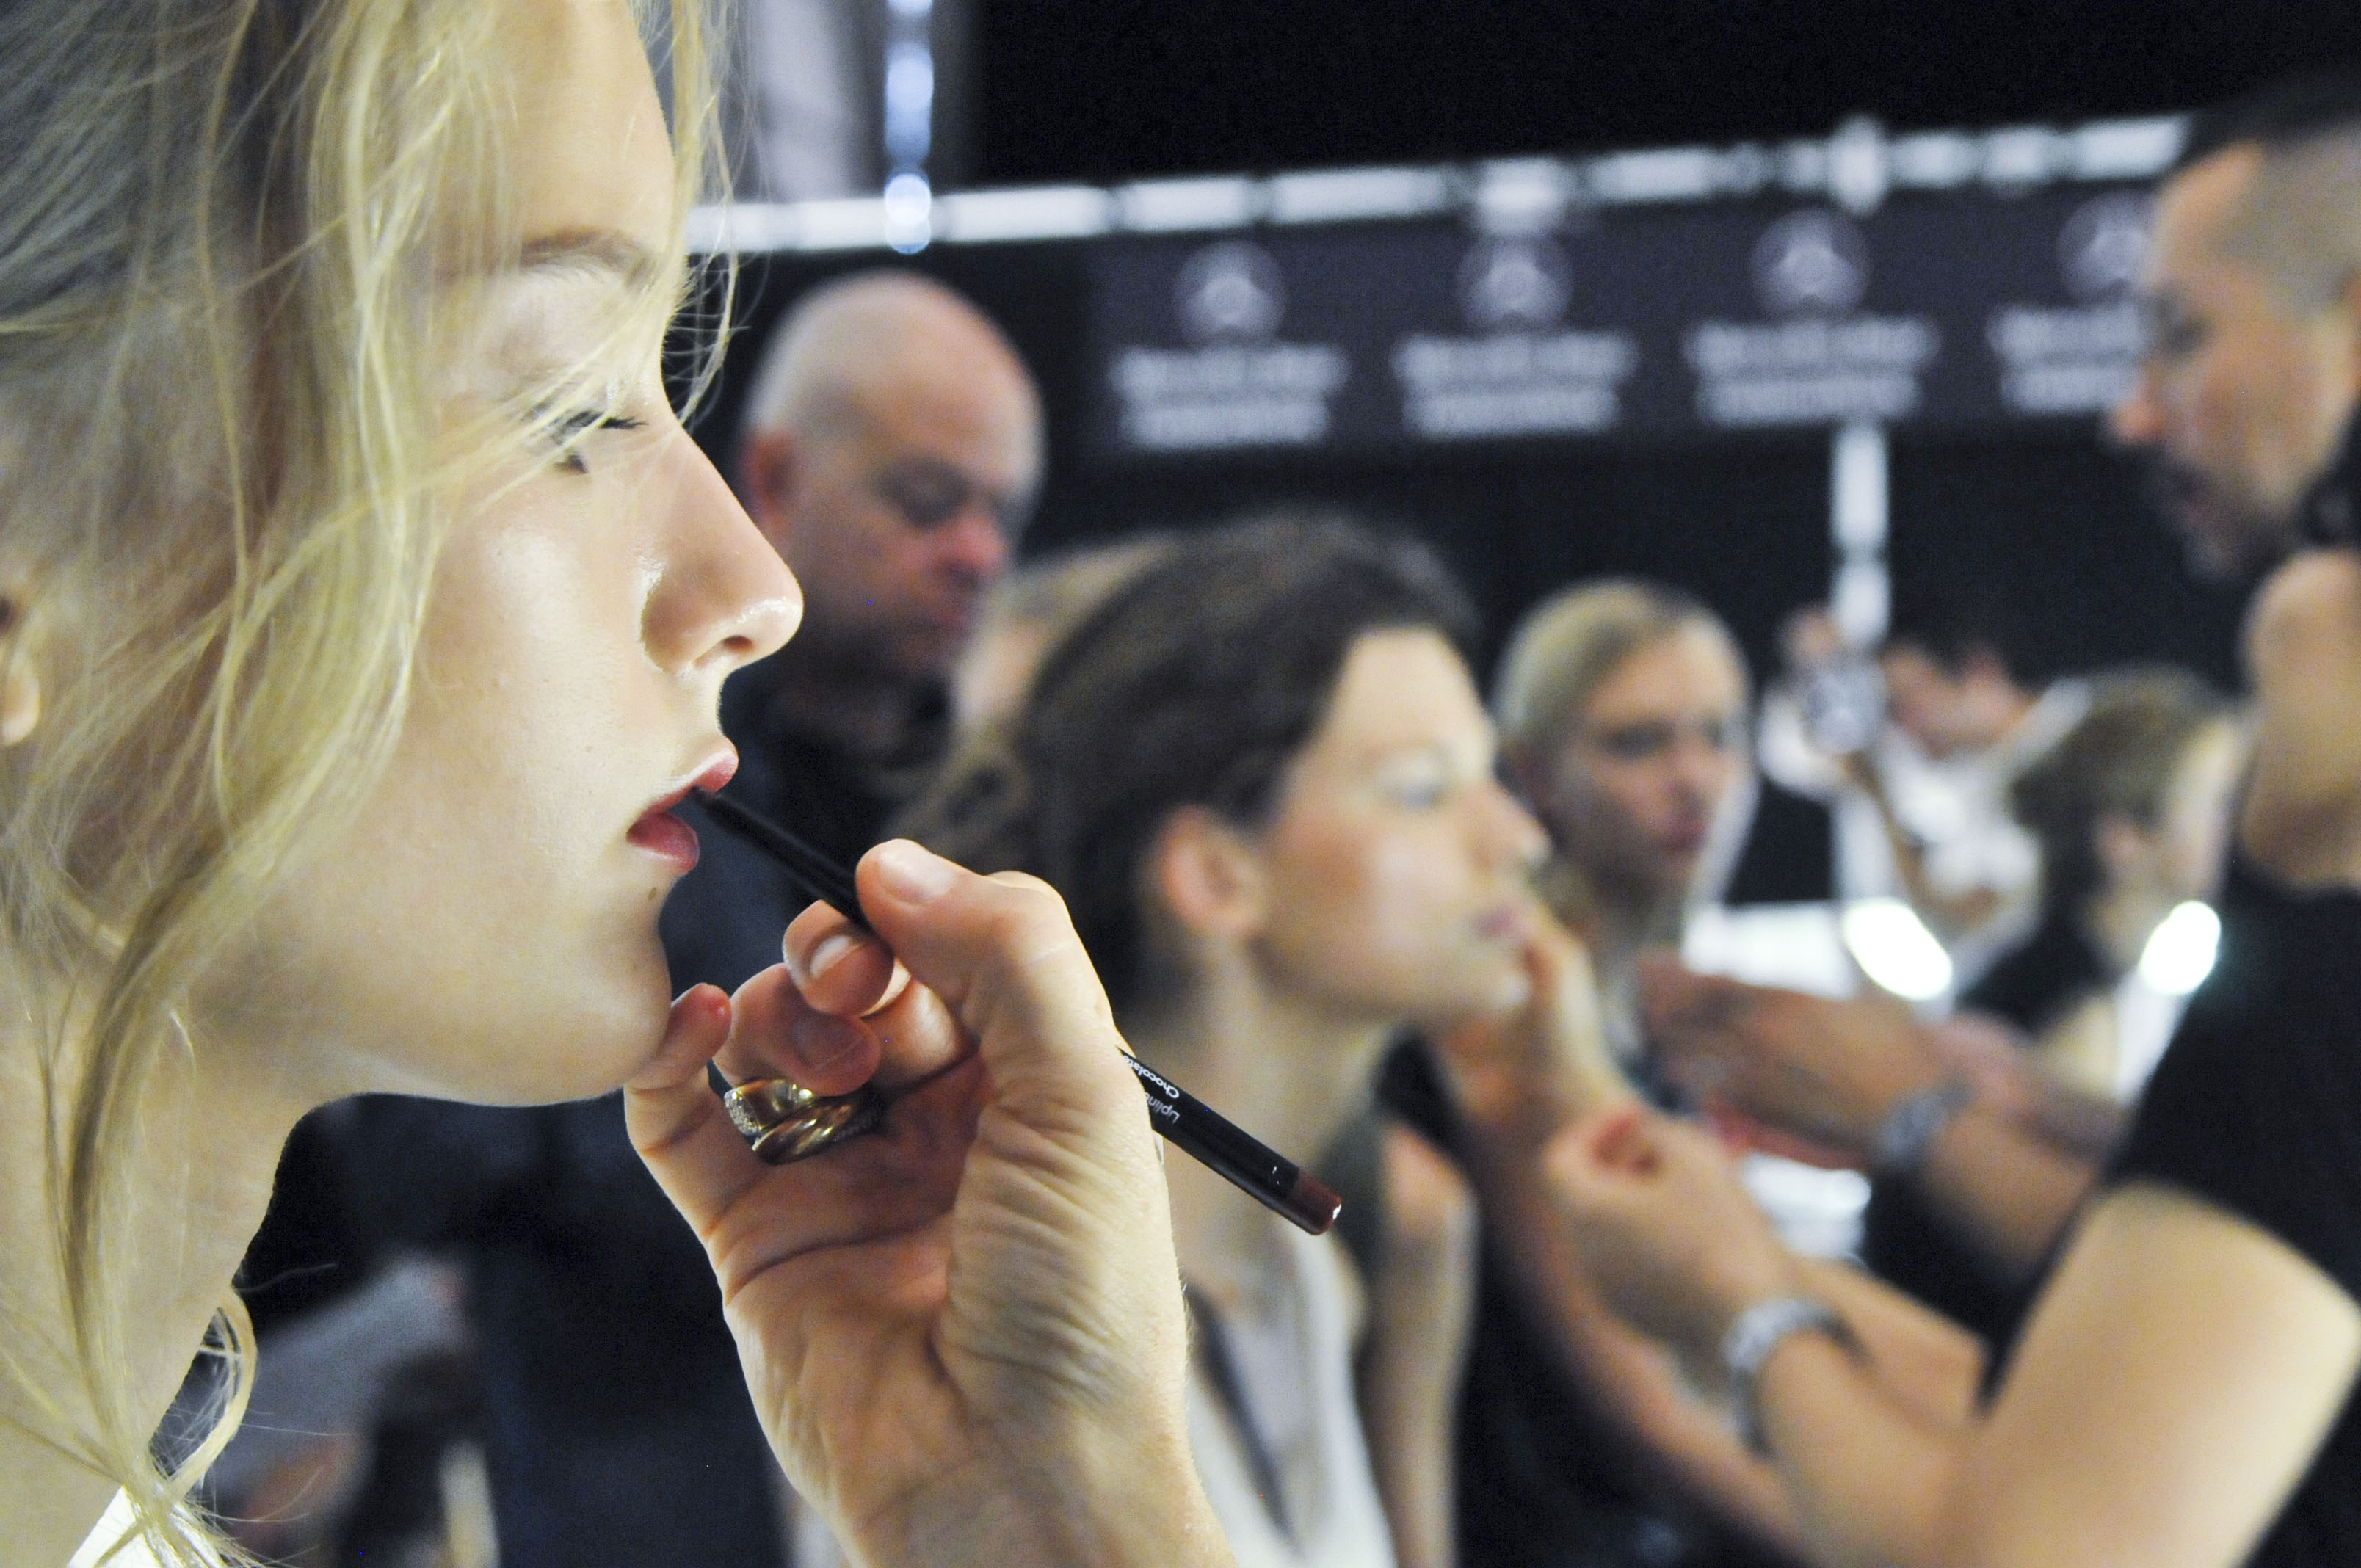 Get the look! Gucci Westman for Revlon, backstage with model at J. MENDEL S/S 2014